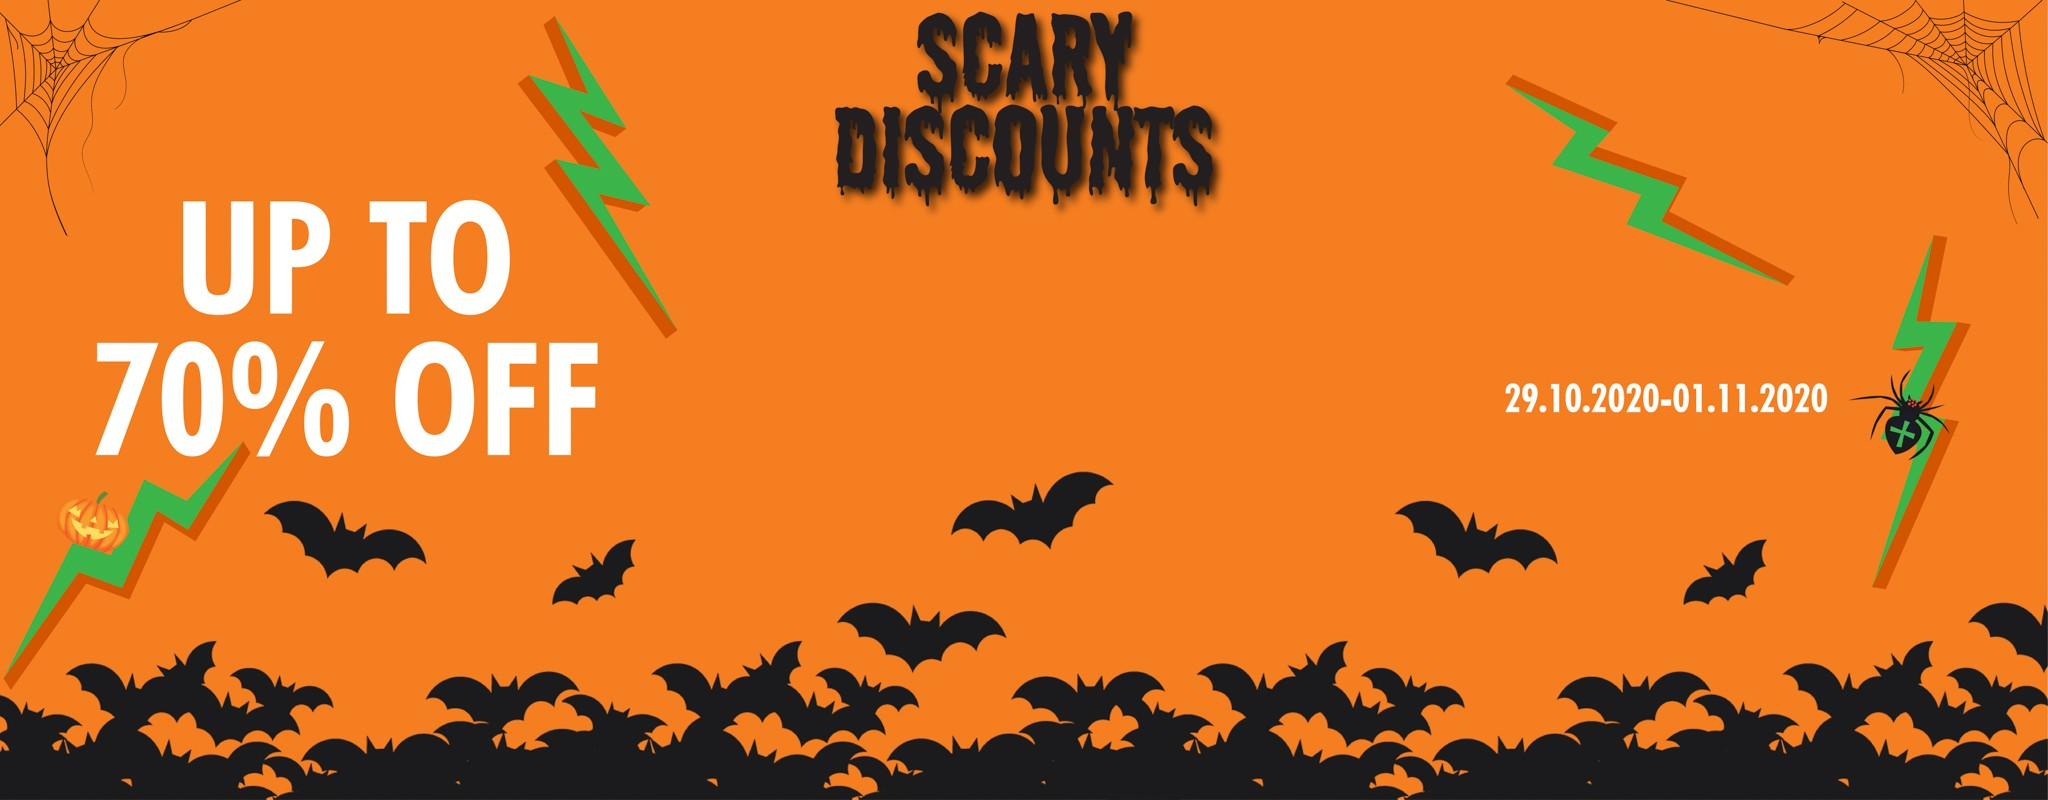 SPOOKY DISCOUNTS UP TO 70% OFF